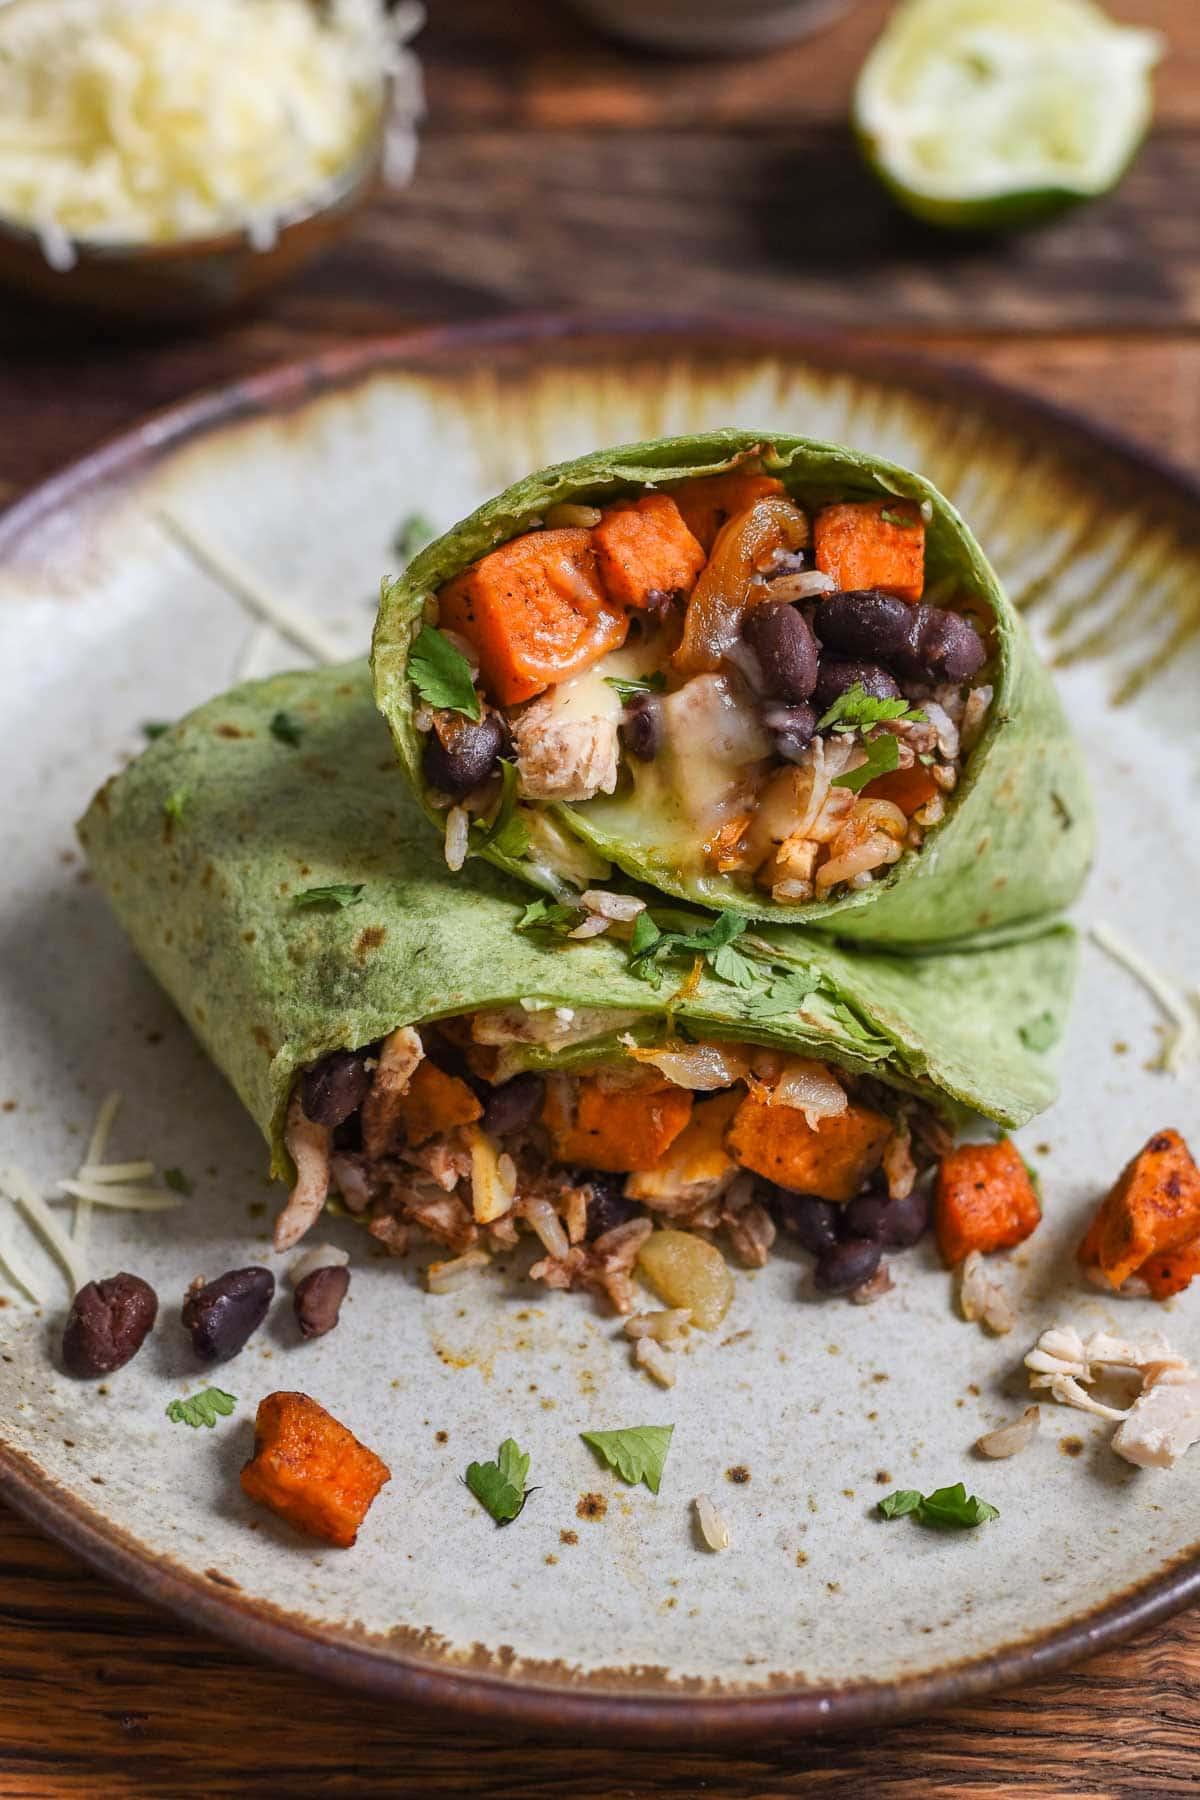 Sweet Potato Black Bean Burritos are my go-to freezer burrito for quick lunches or easy dinners. The post also includes loads of tips for turning your leftovers into freezer burritos!